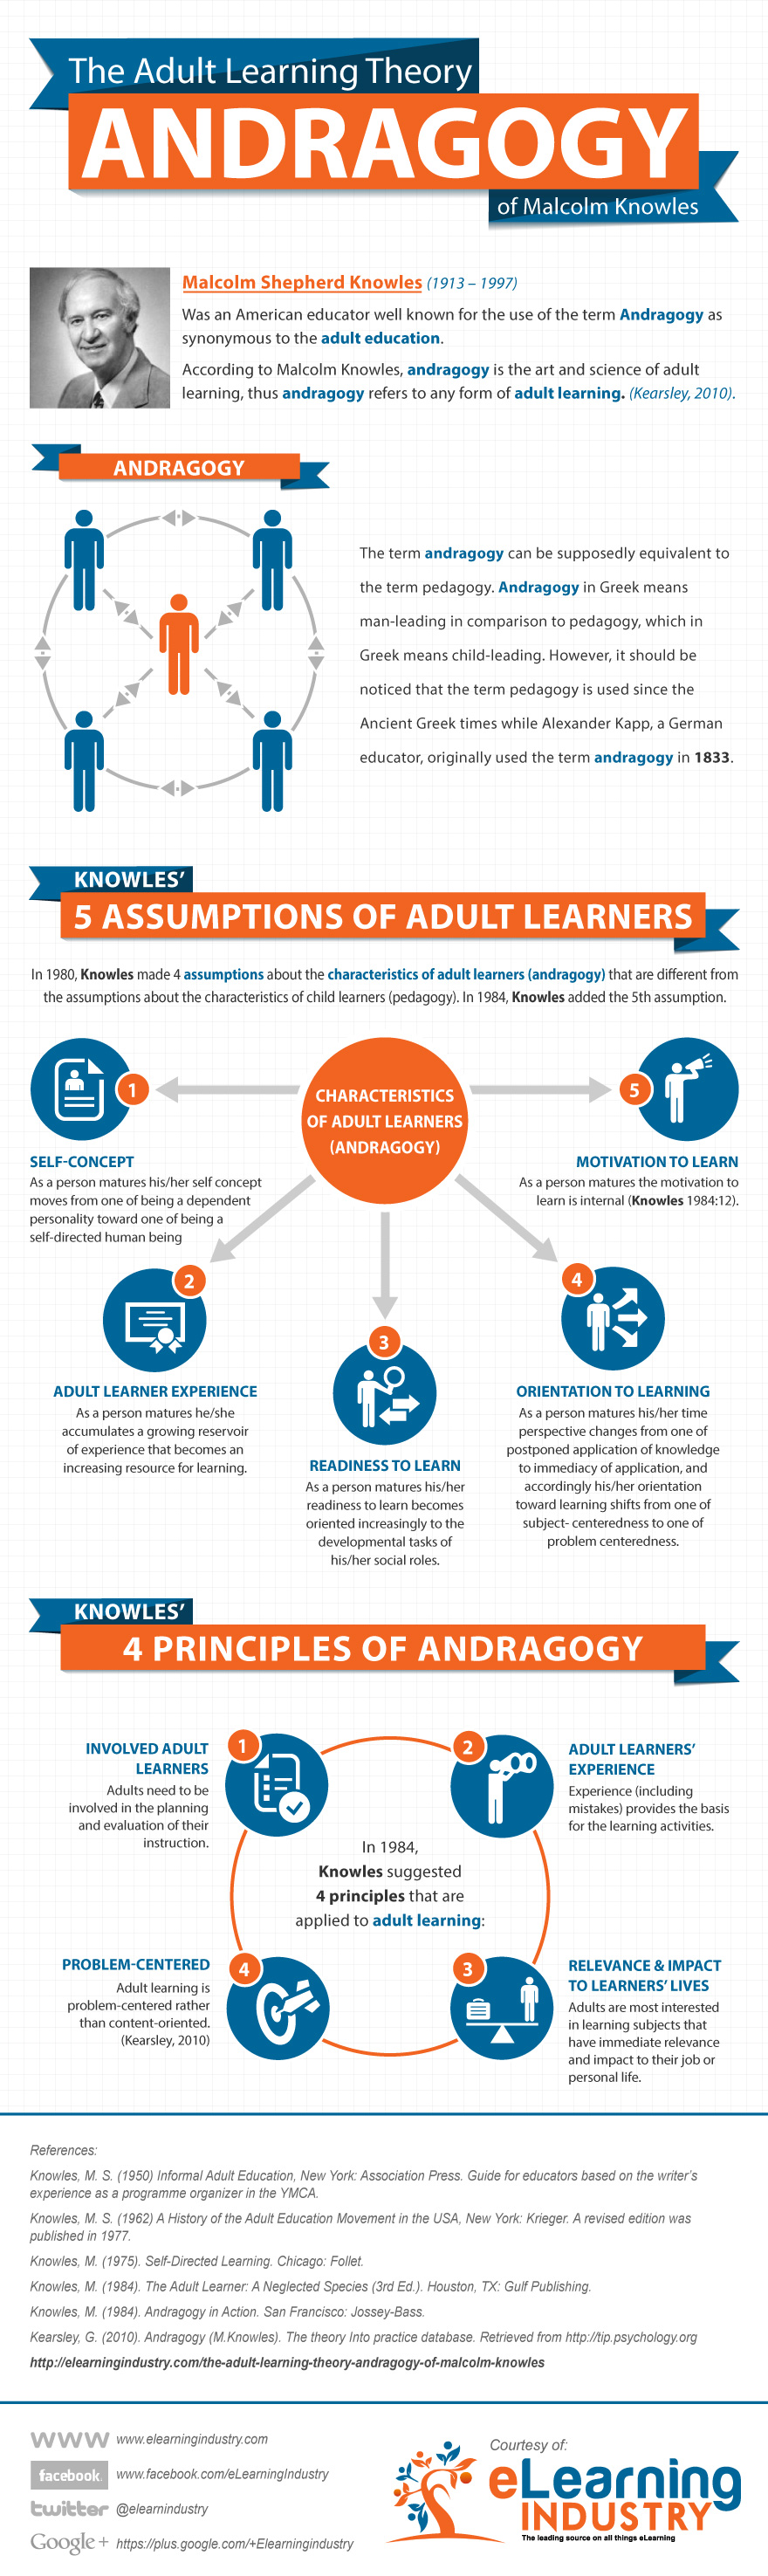 Adult-Learning-Theory-Andragogy-Infographic